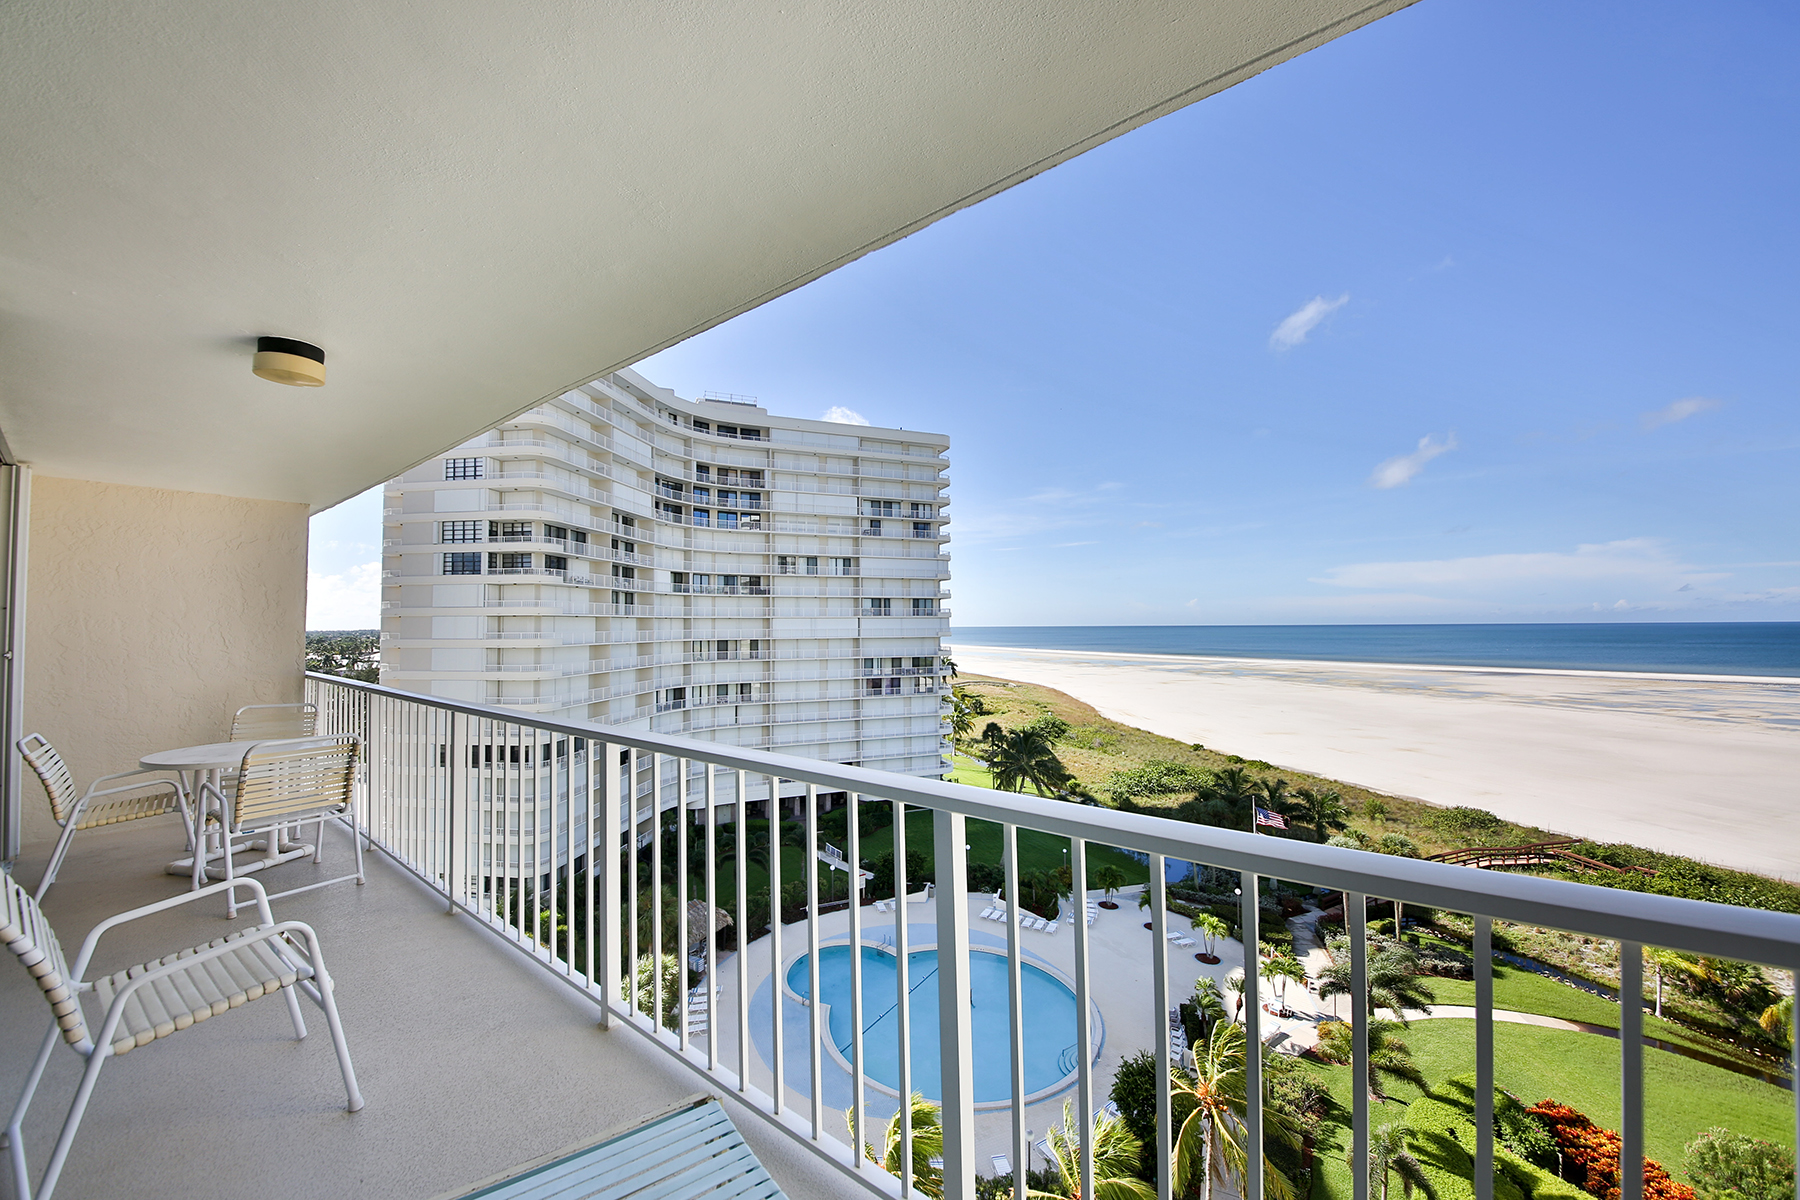 Condominium for Sale at MARCO ISLAND - SOUTH SEAS 320 Seaview Ct 905 Marco Island, Florida, 34145 United States